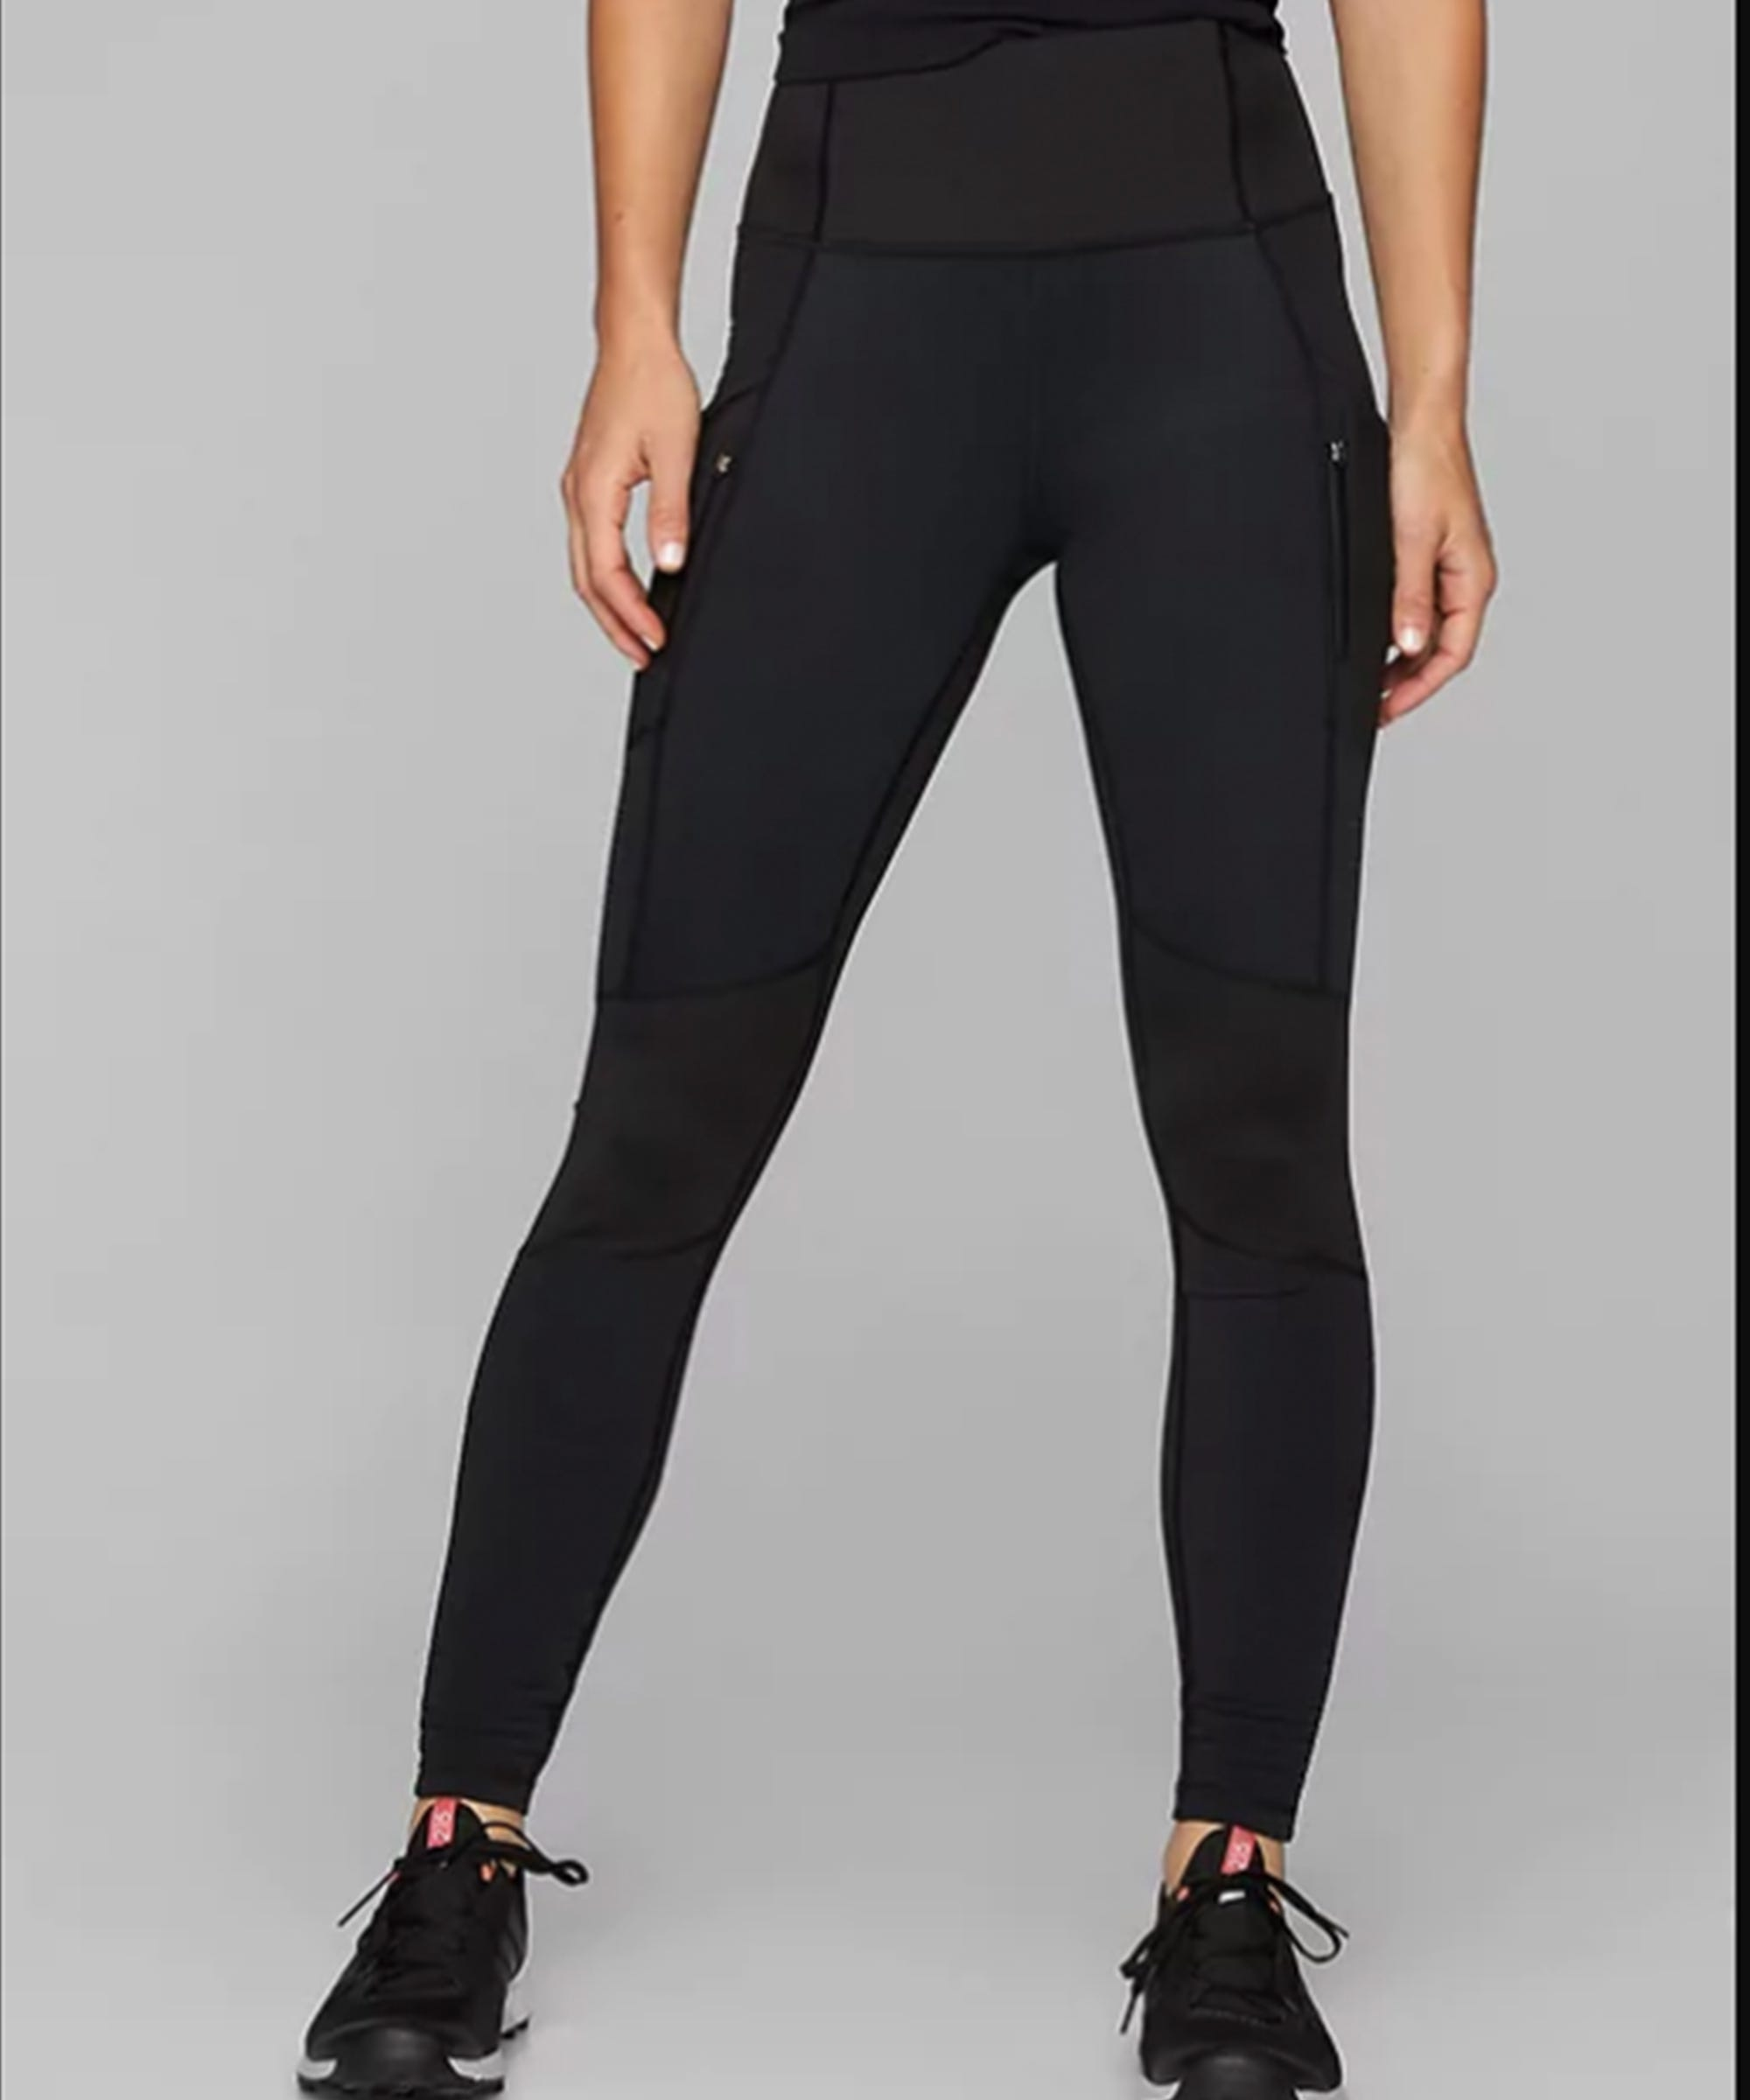 bcc7747dcd699a Best Warm Leggings For Winter Workouts Clothes, Women